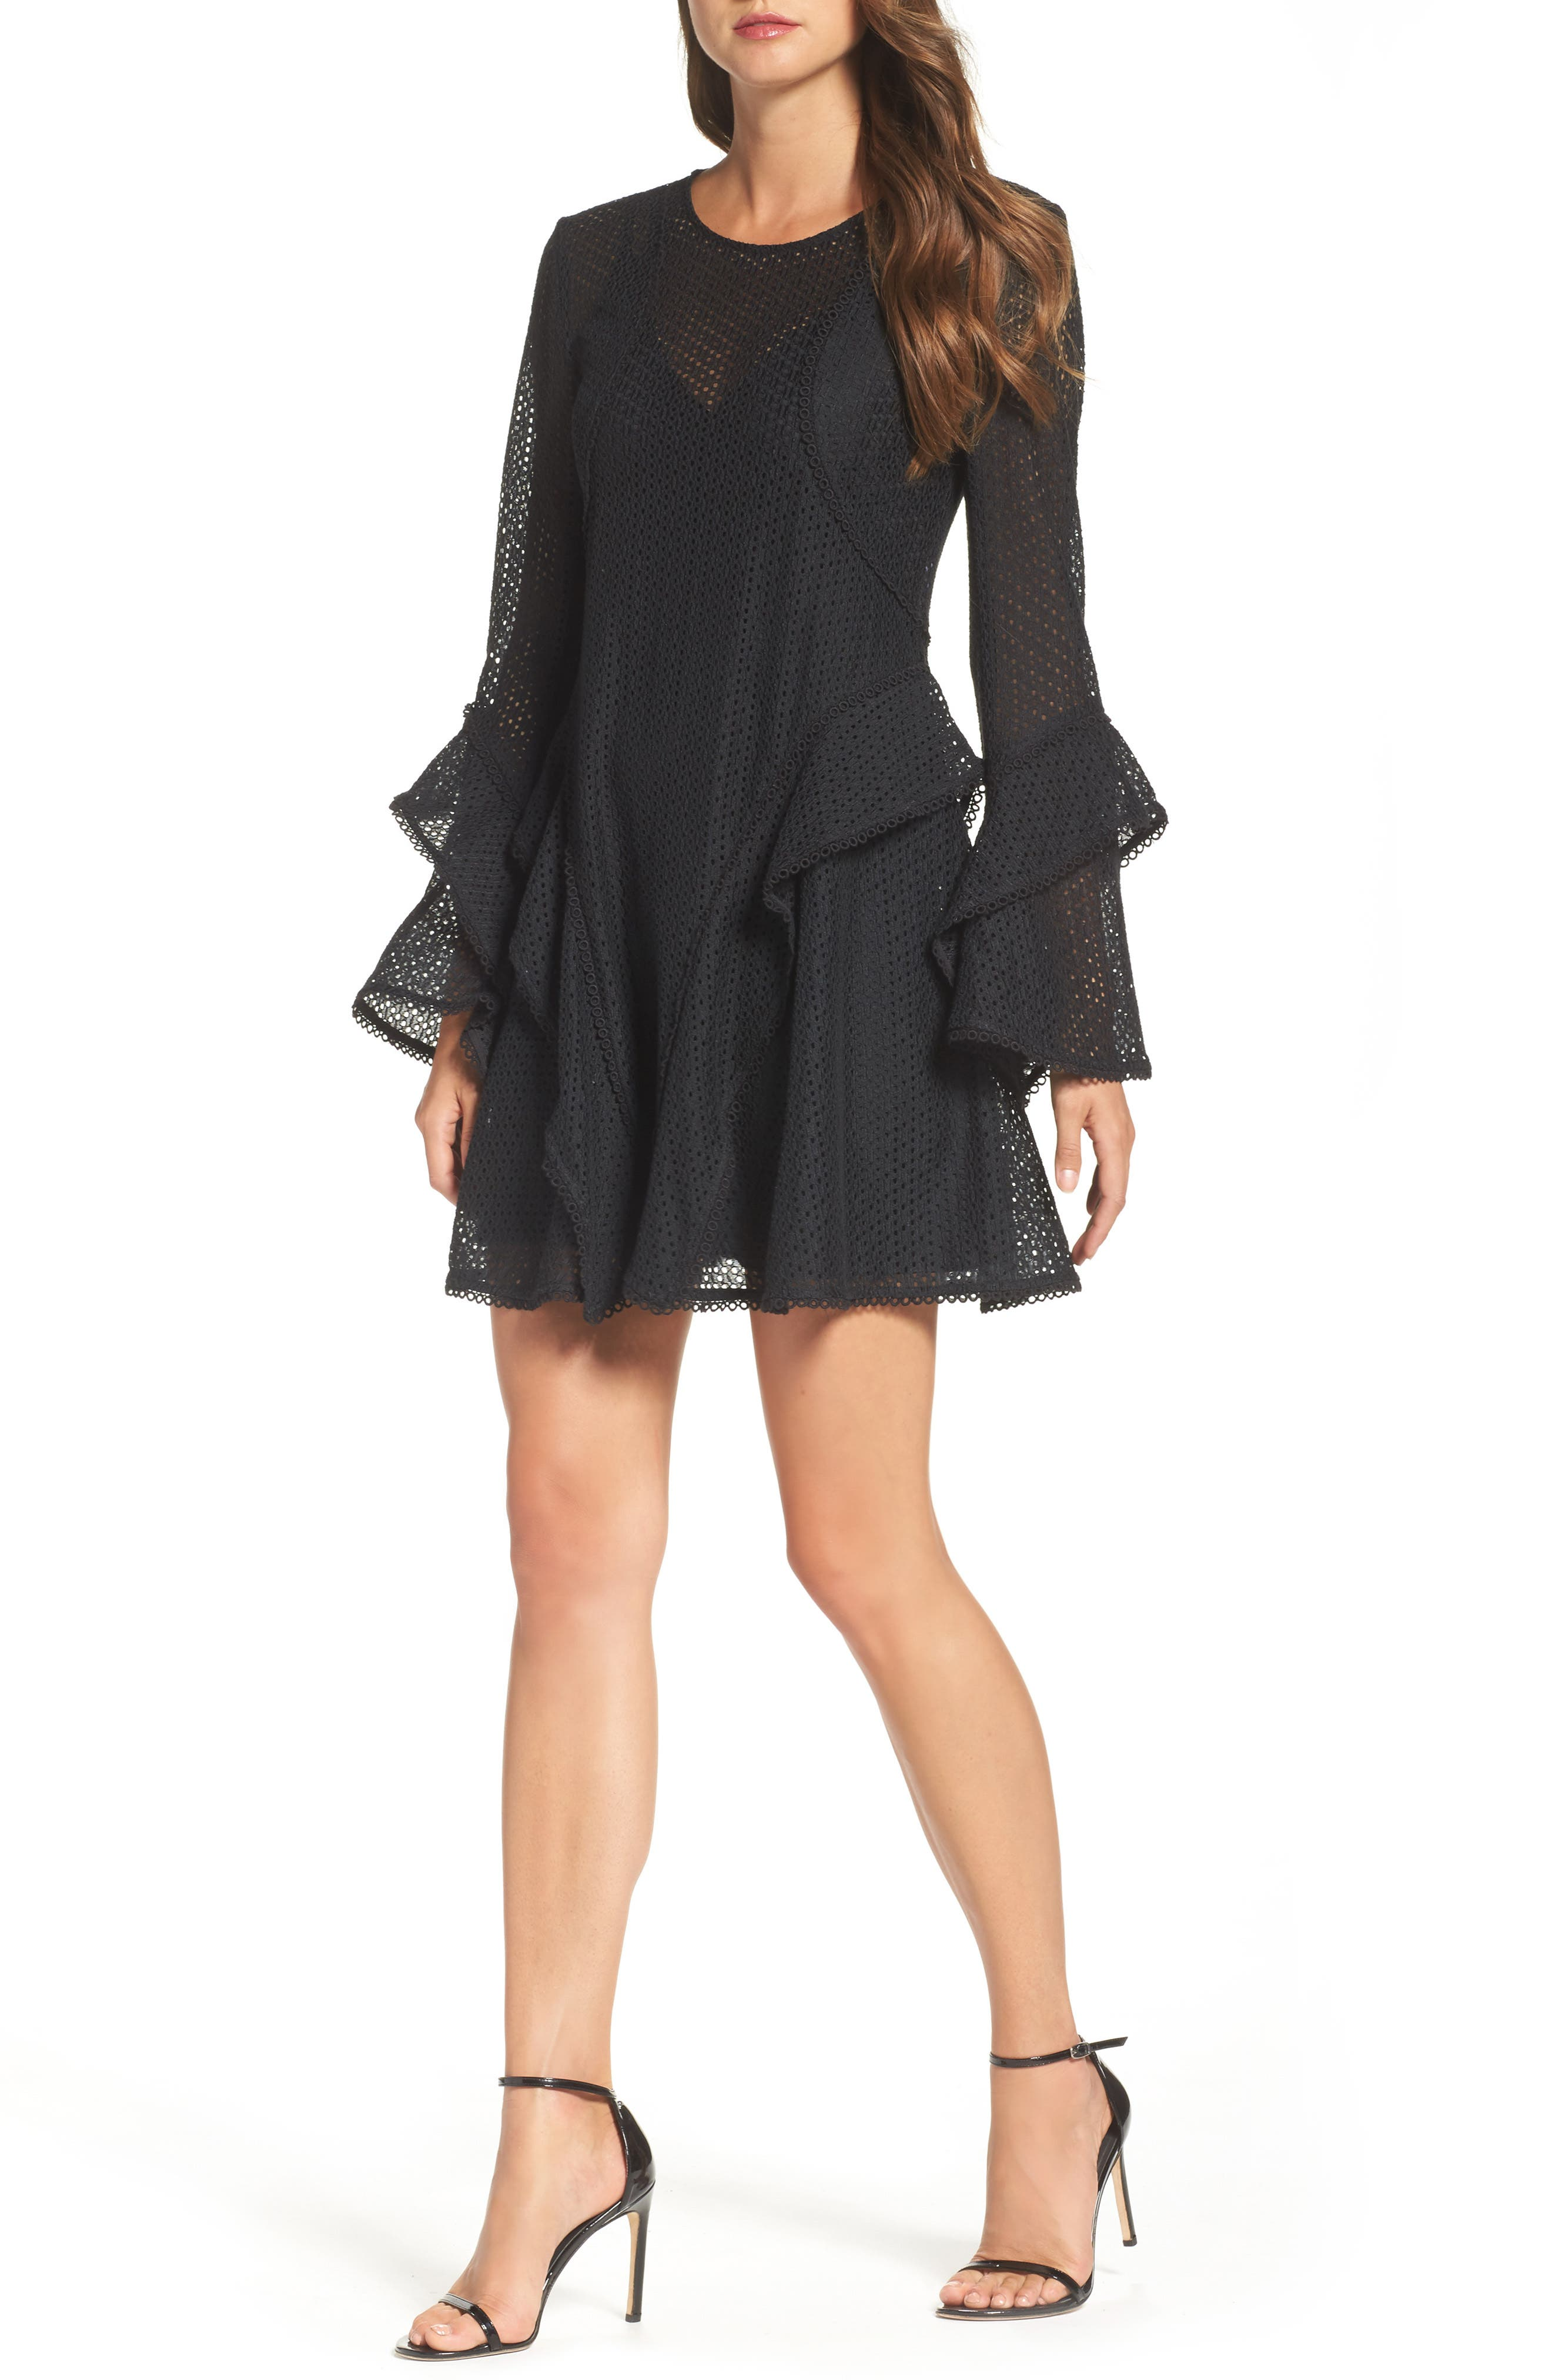 Aspire Lace Bell Sleeve Minidress,                         Main,                         color, 001